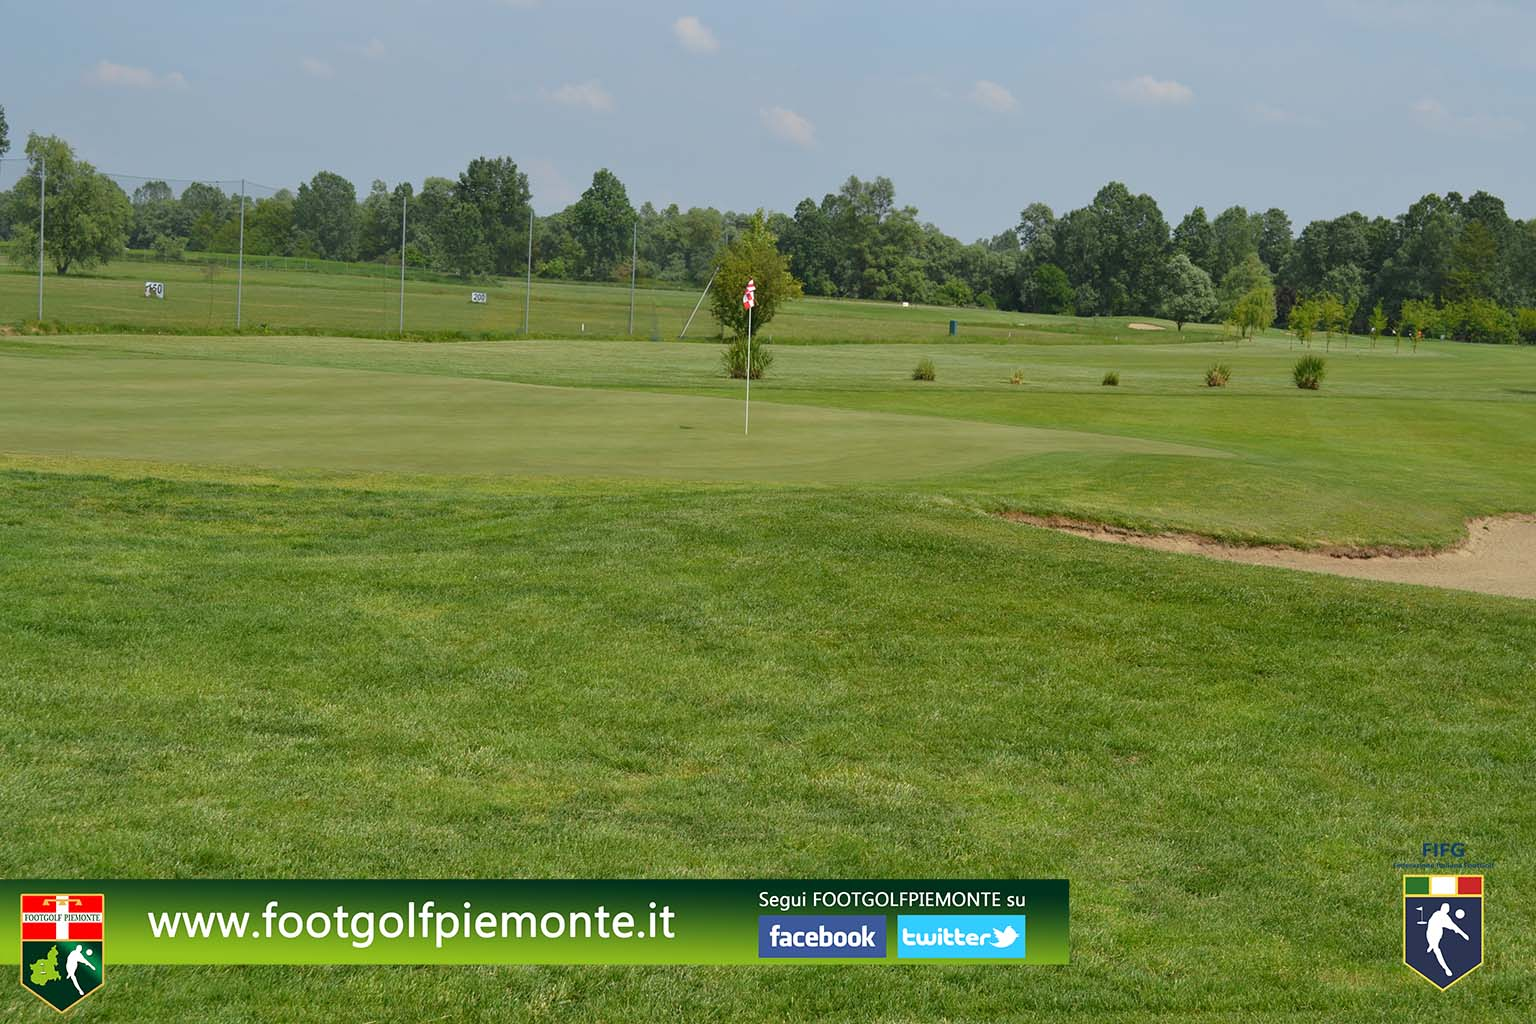 FOTO 9 Regions' Cup Footgolf Piemonte 2016 Golf Città di Asti (At) 30apr16-99